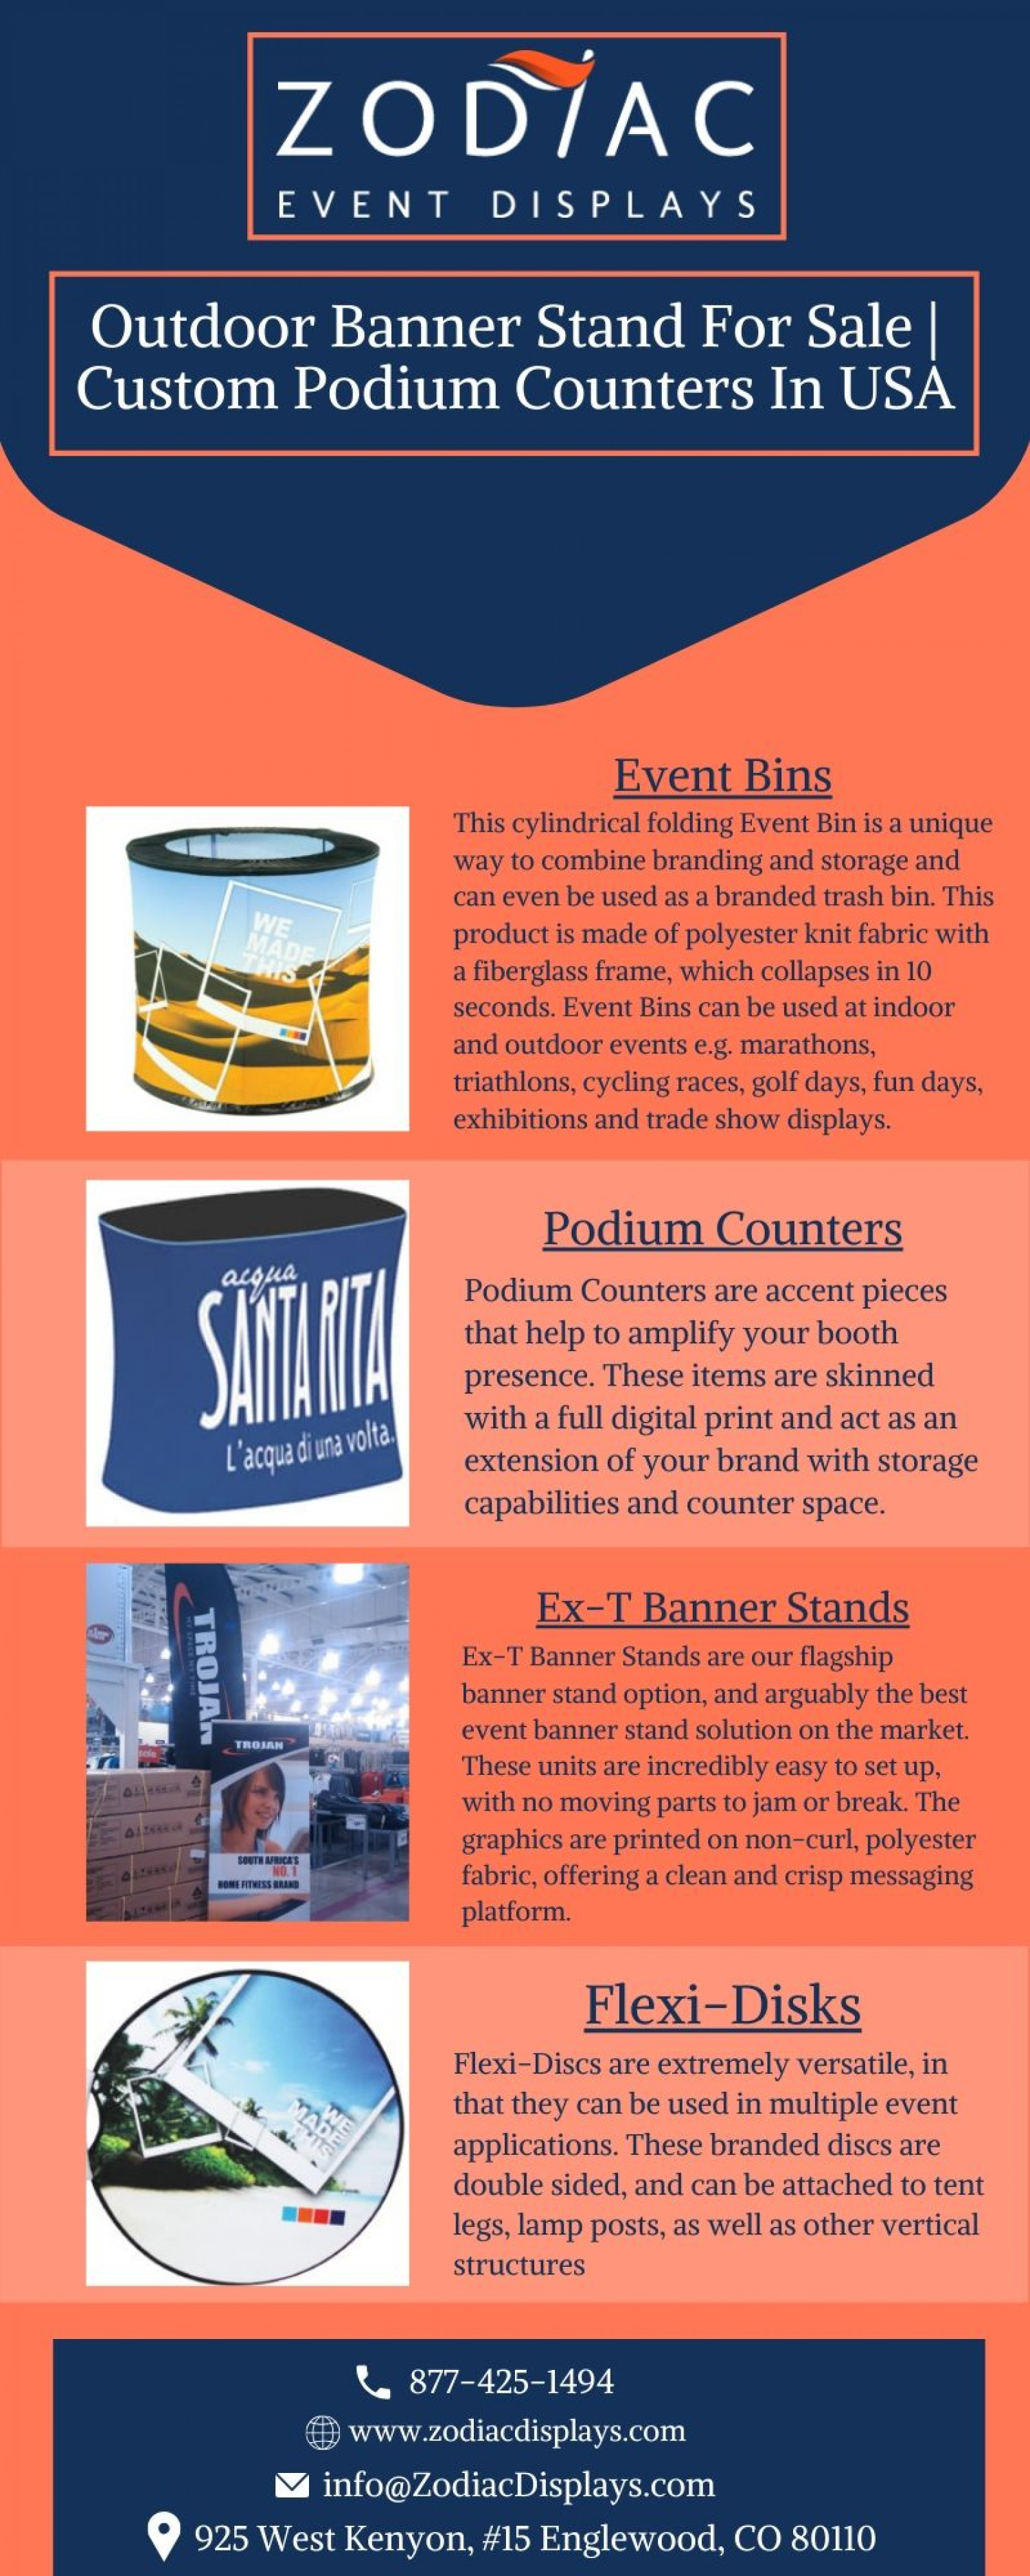 Outdoor Banner Stand For Sale | Custom Podium Counters In USA Infographic